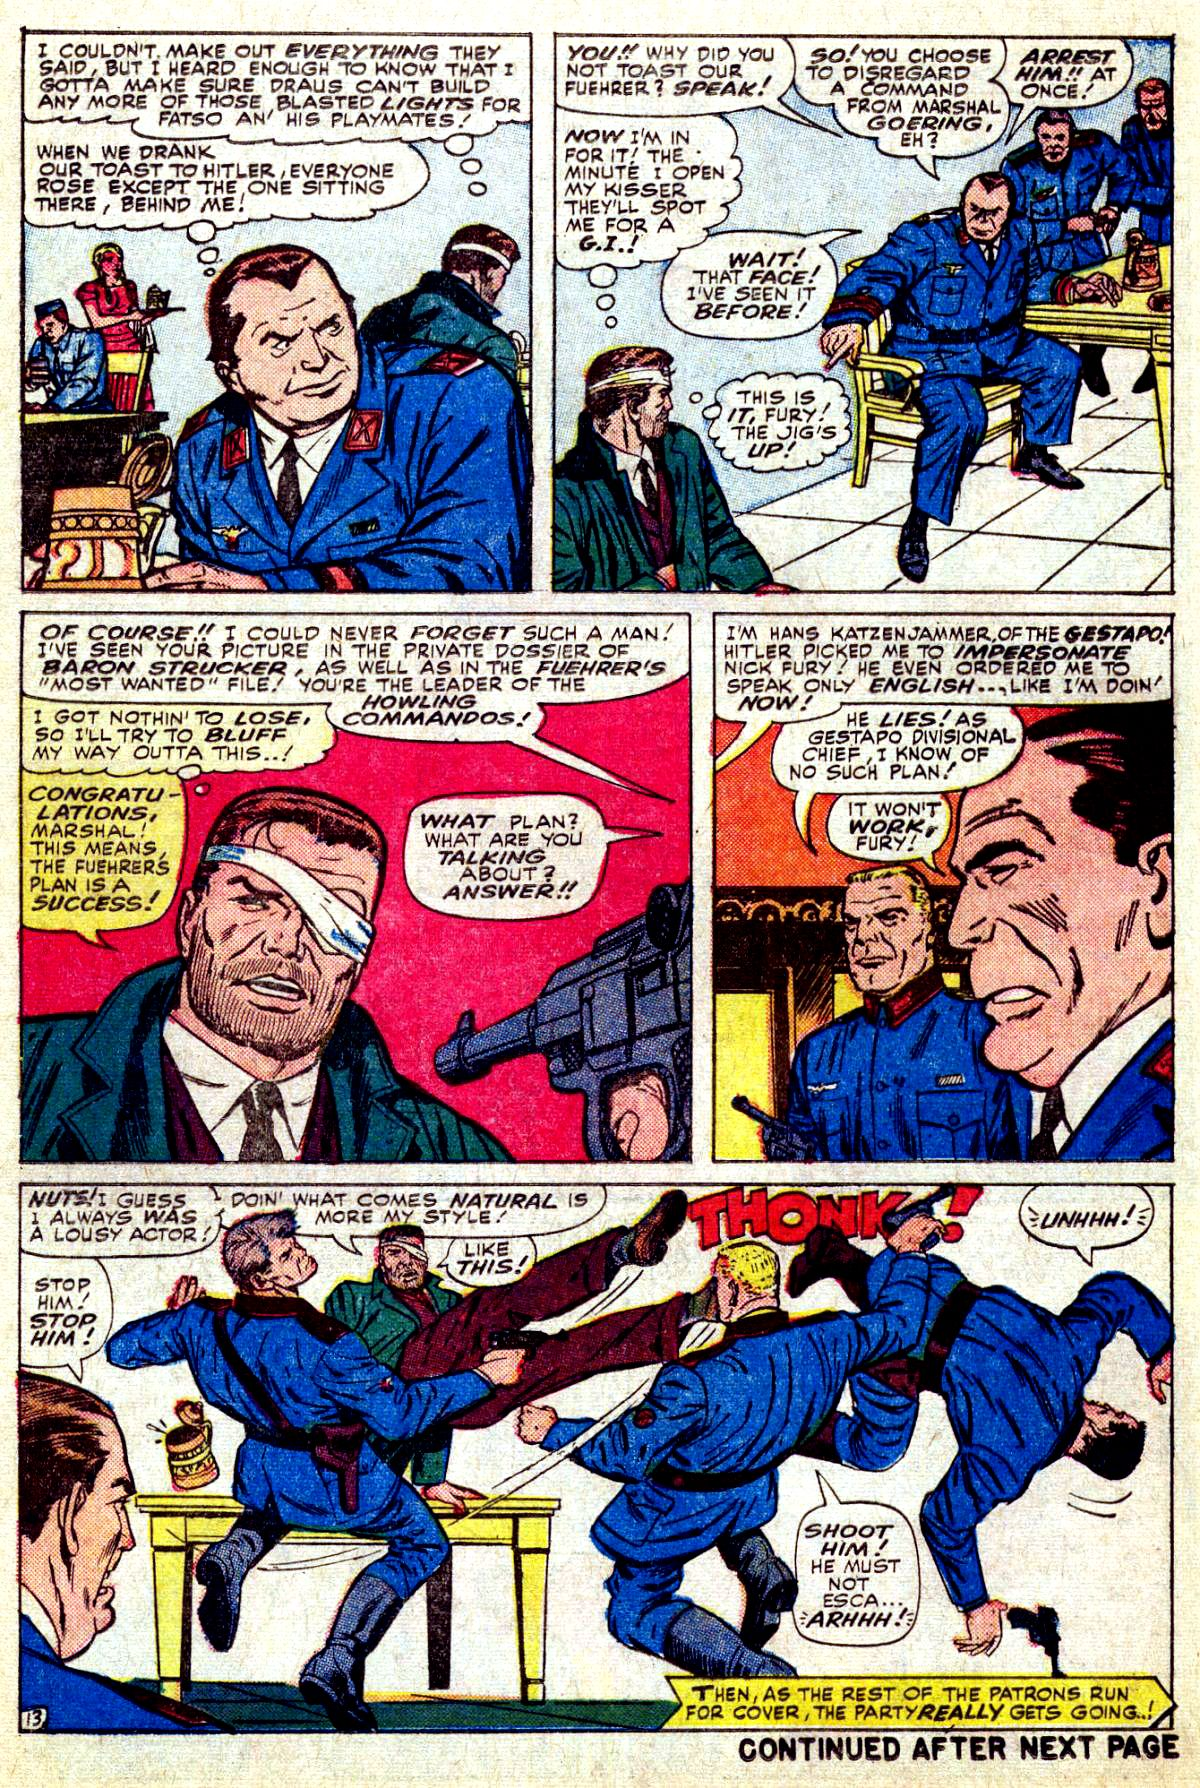 Read online Sgt. Fury comic -  Issue #27 - 18